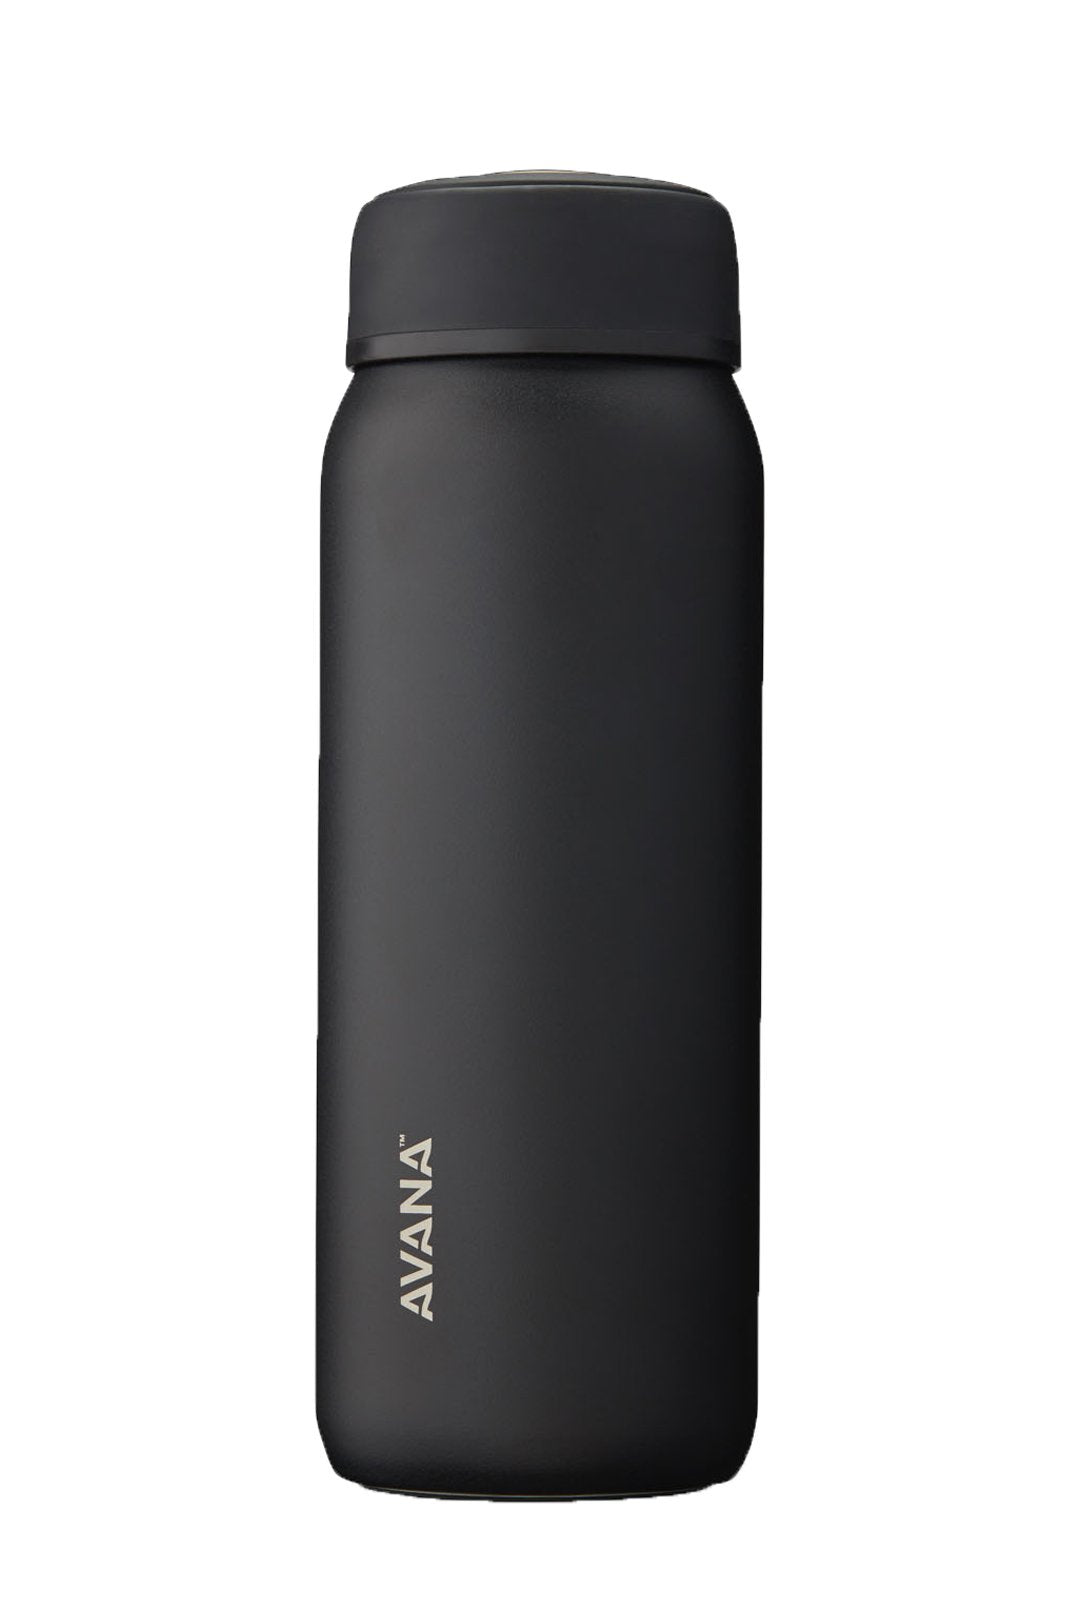 Beckridge Water Bottle, Stainless Steel - Lola Cerina Boutique